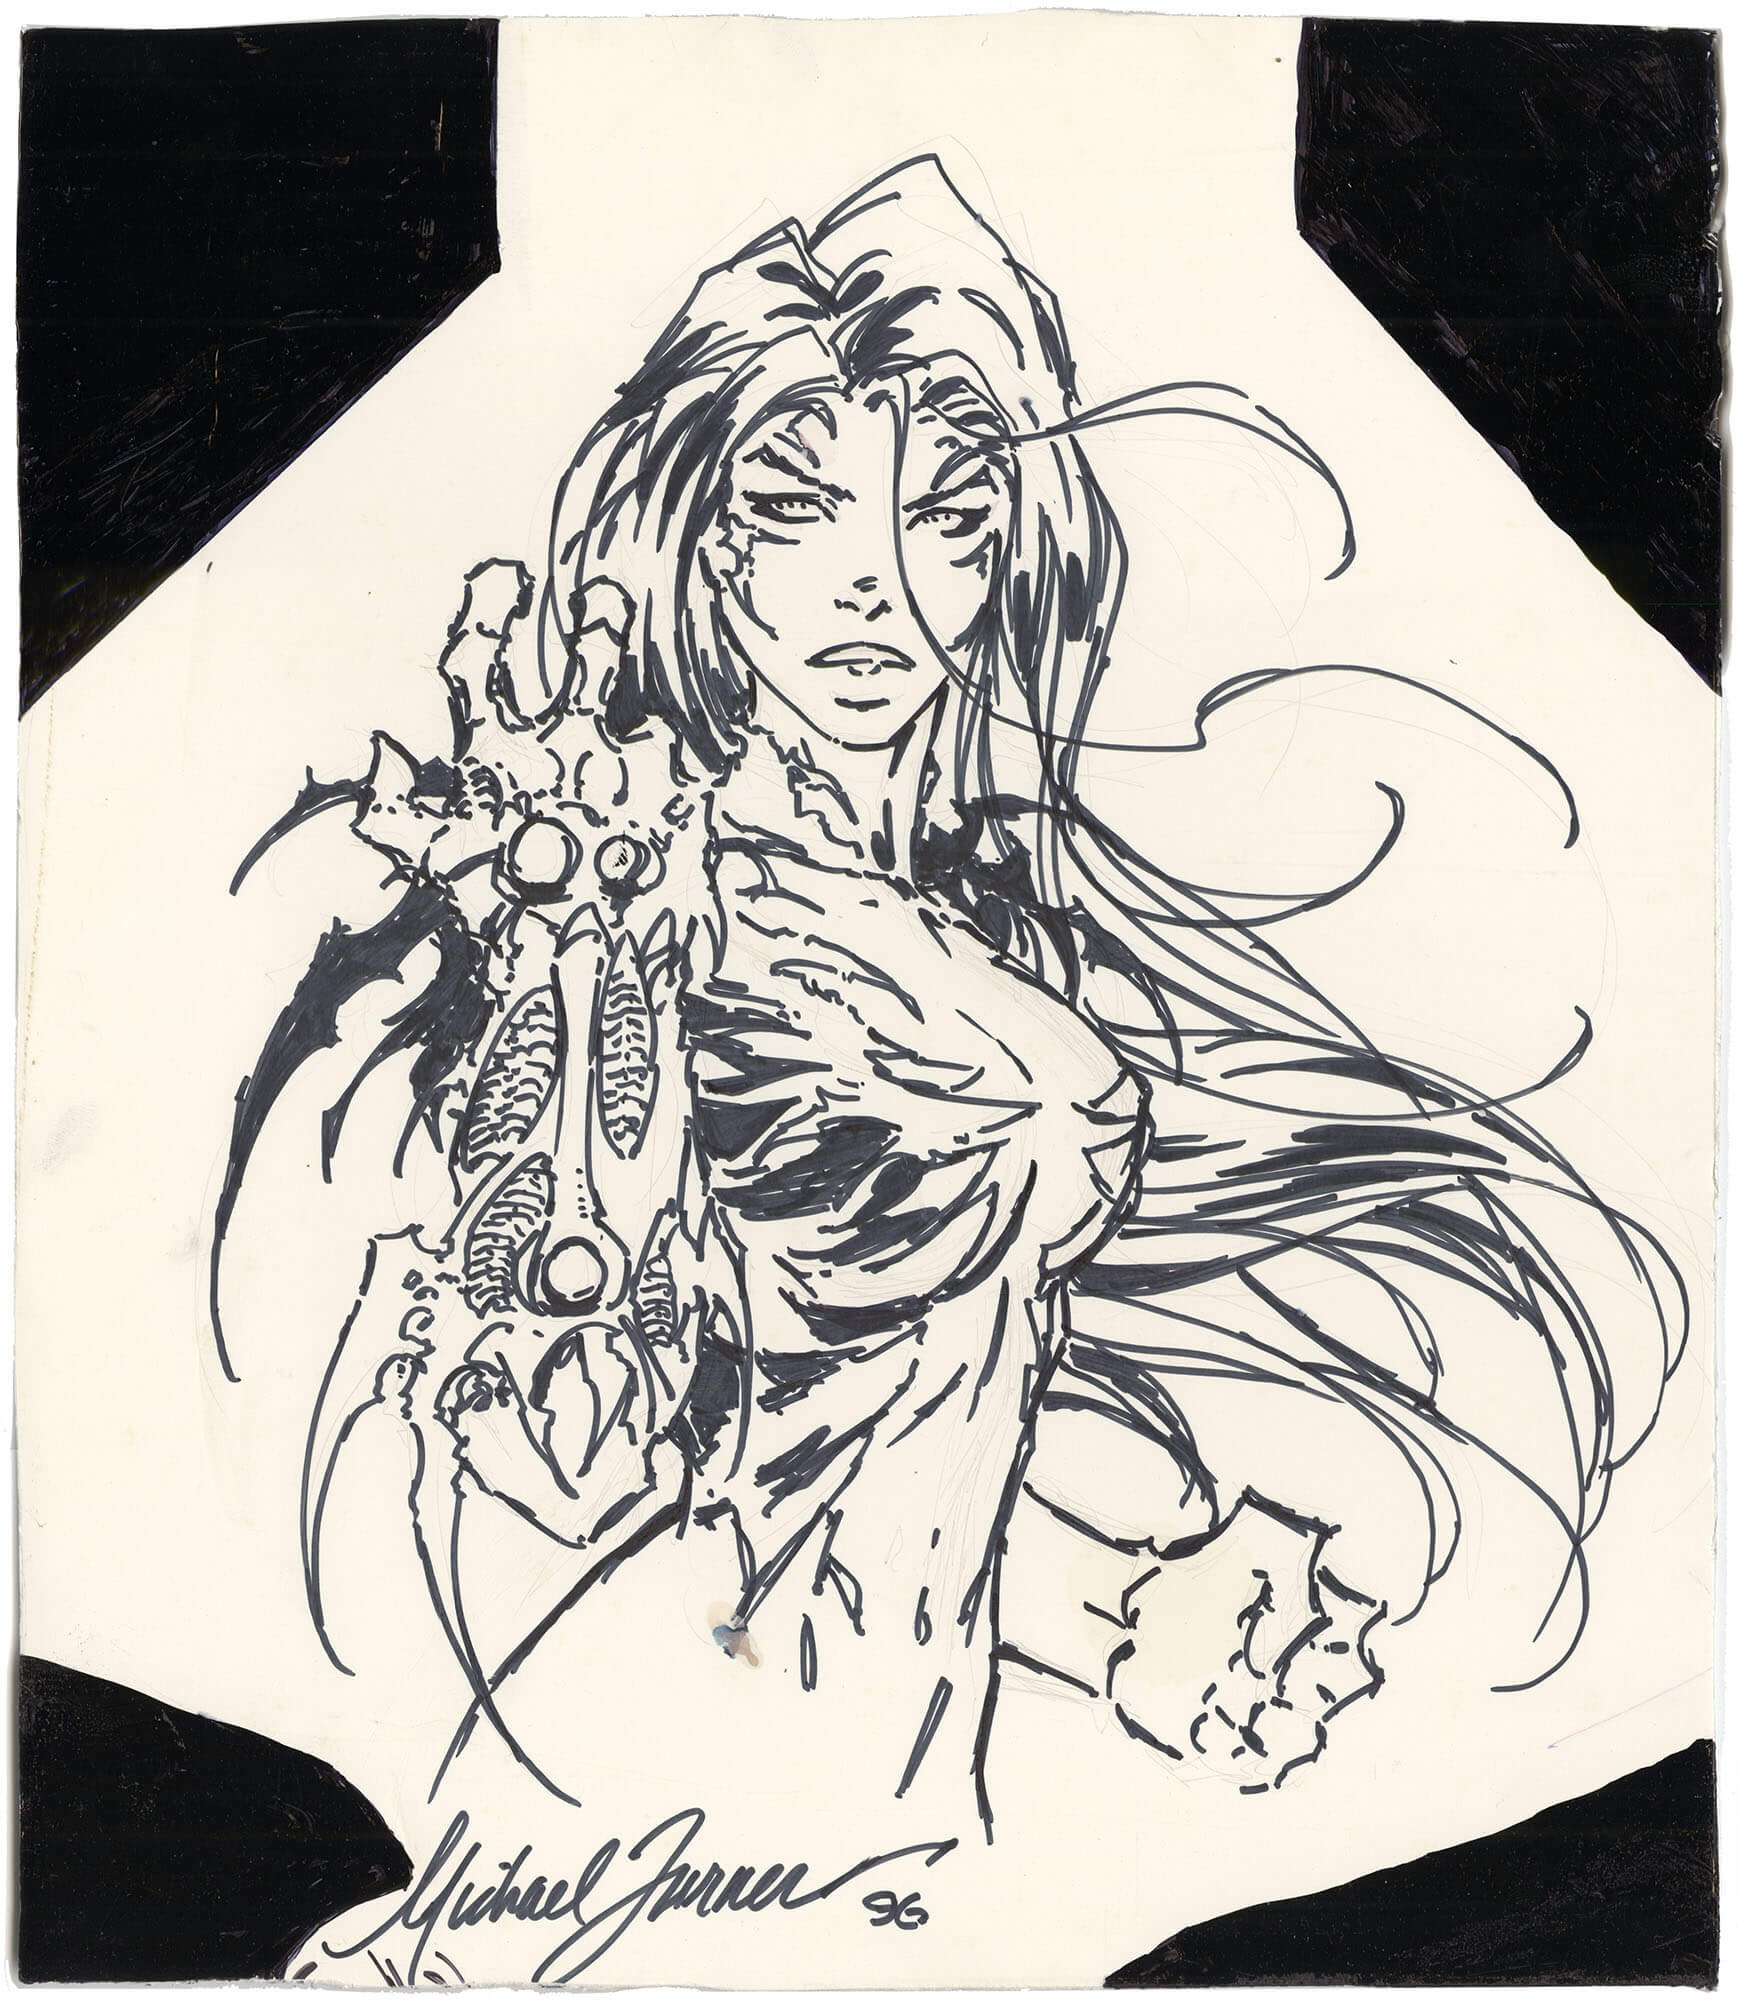 Michael Turner Witchblade Illustration (Very Early)